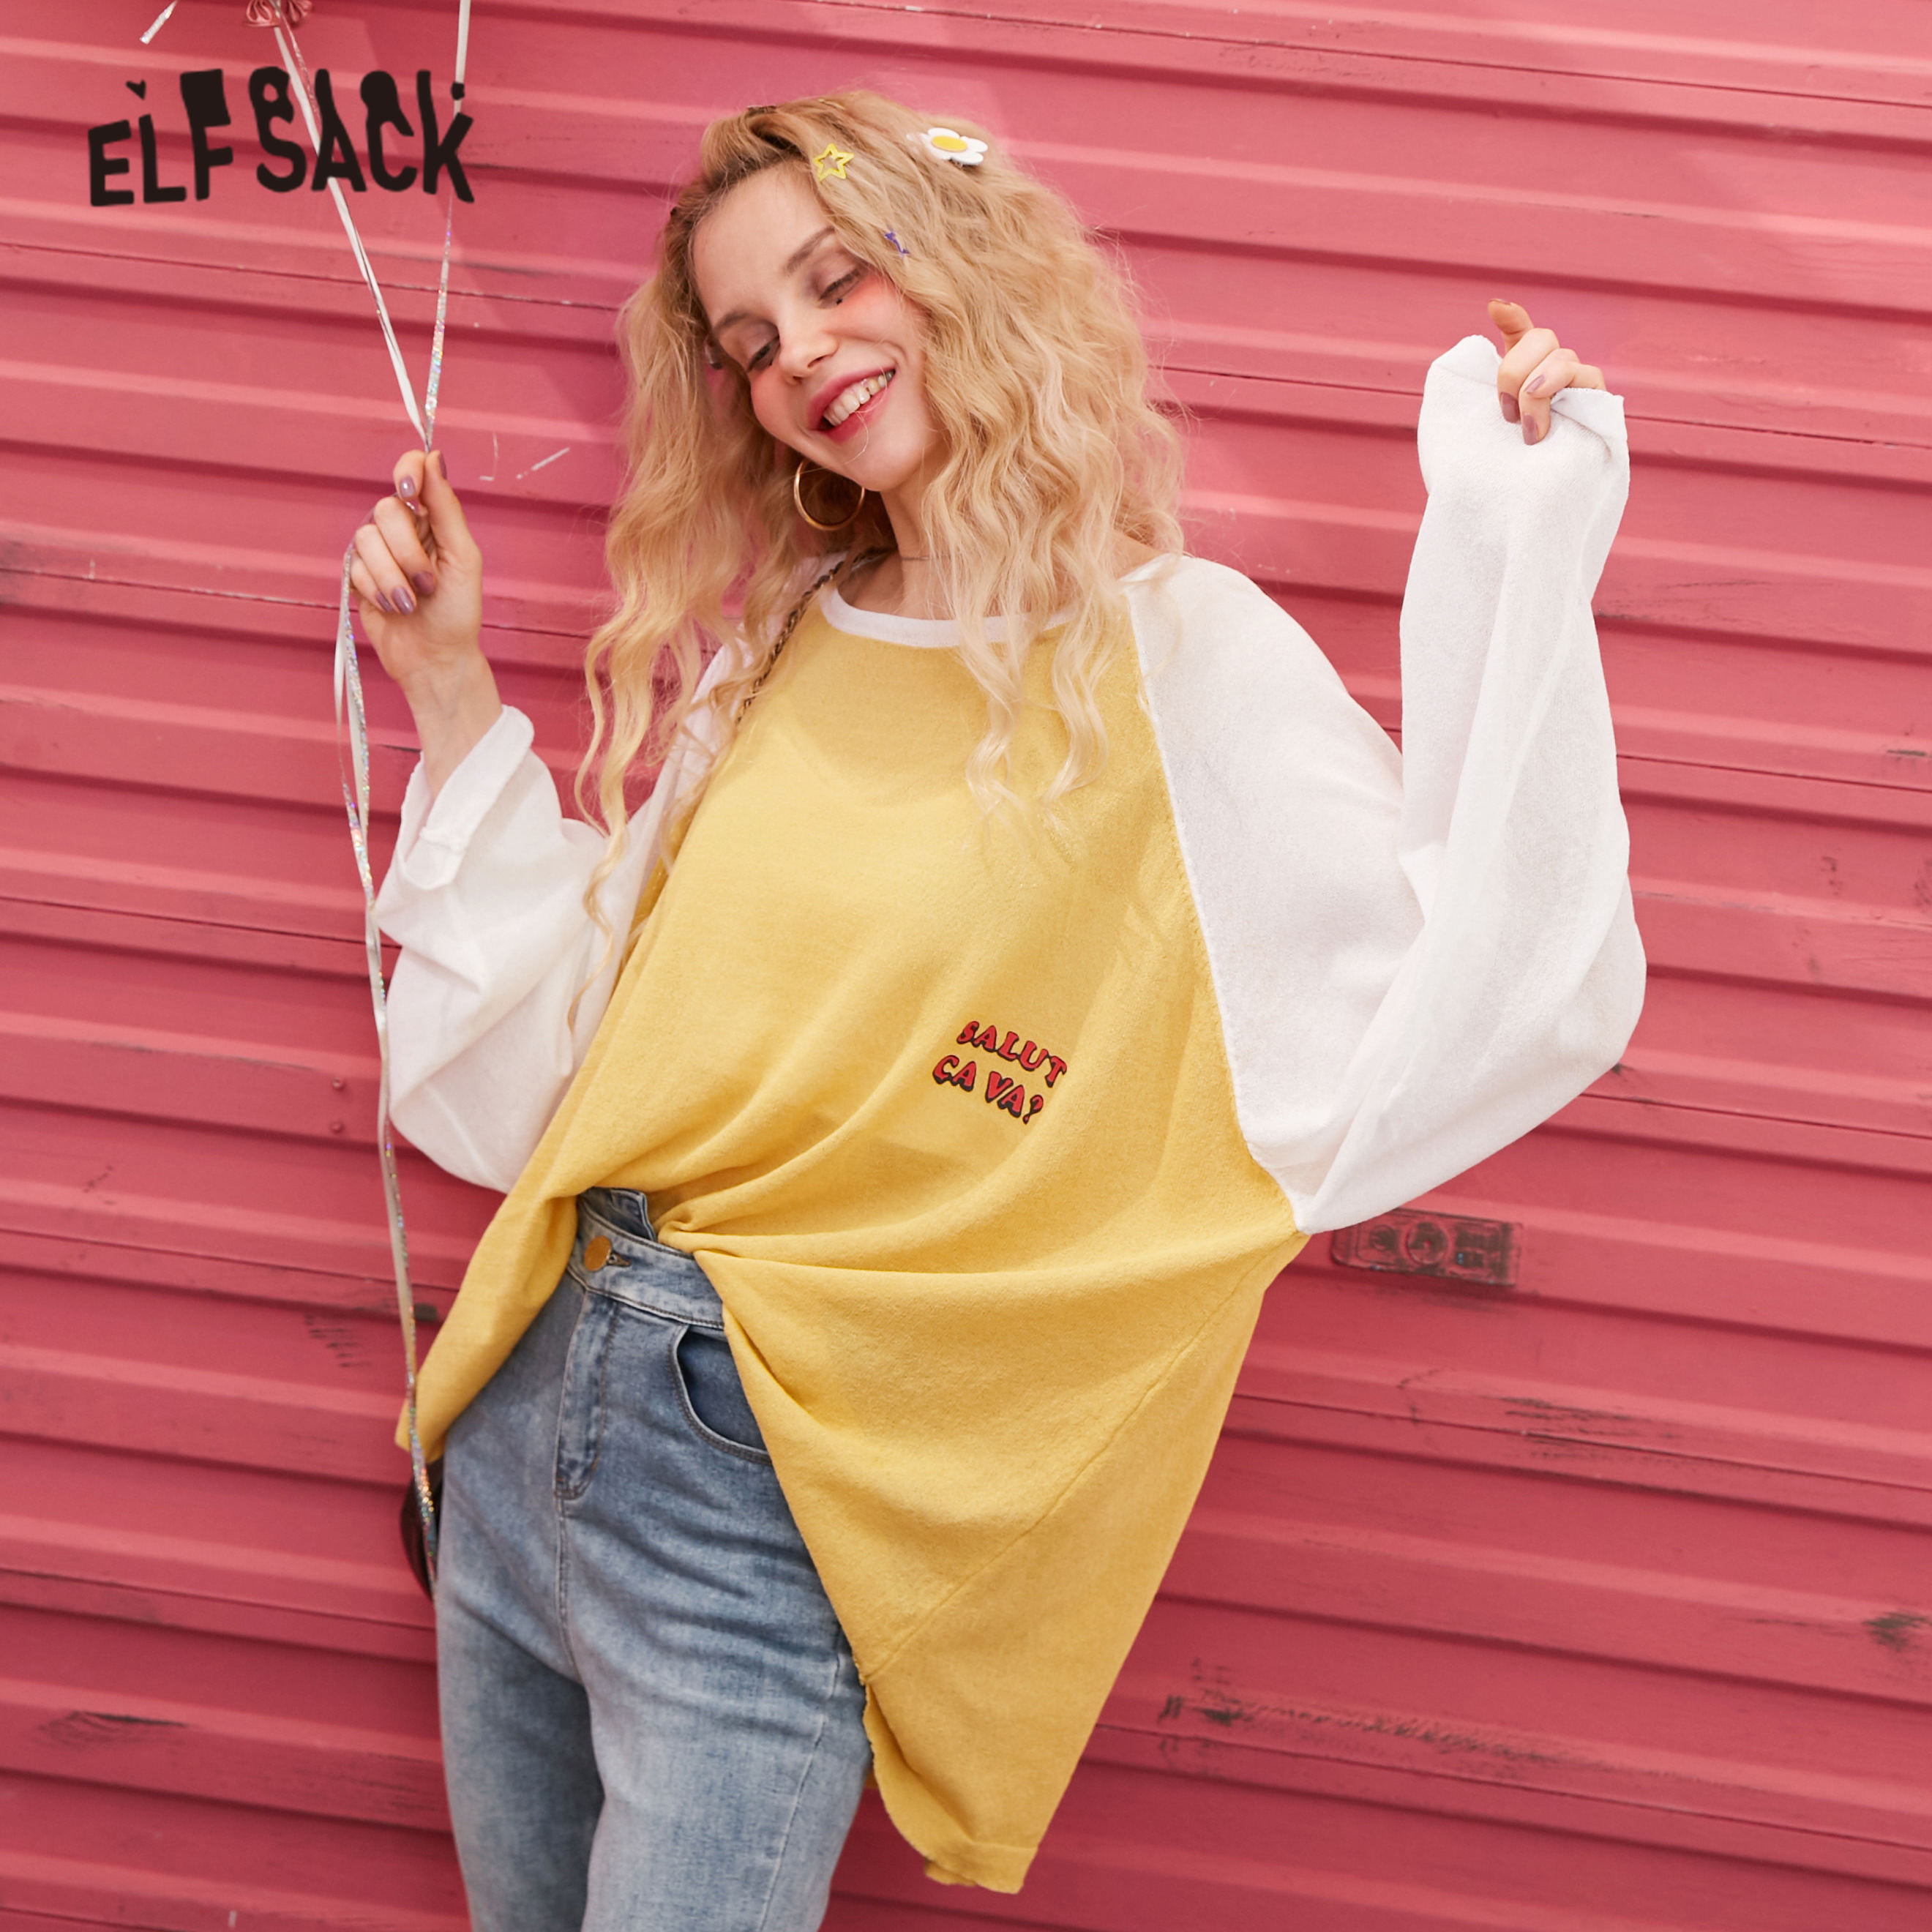 ELFSACK Black Letter Print Knit Casual Pullover Women Thin Sweater 2020 Spring Yellow Colorblock Long Sleeve Girly Korean Tops